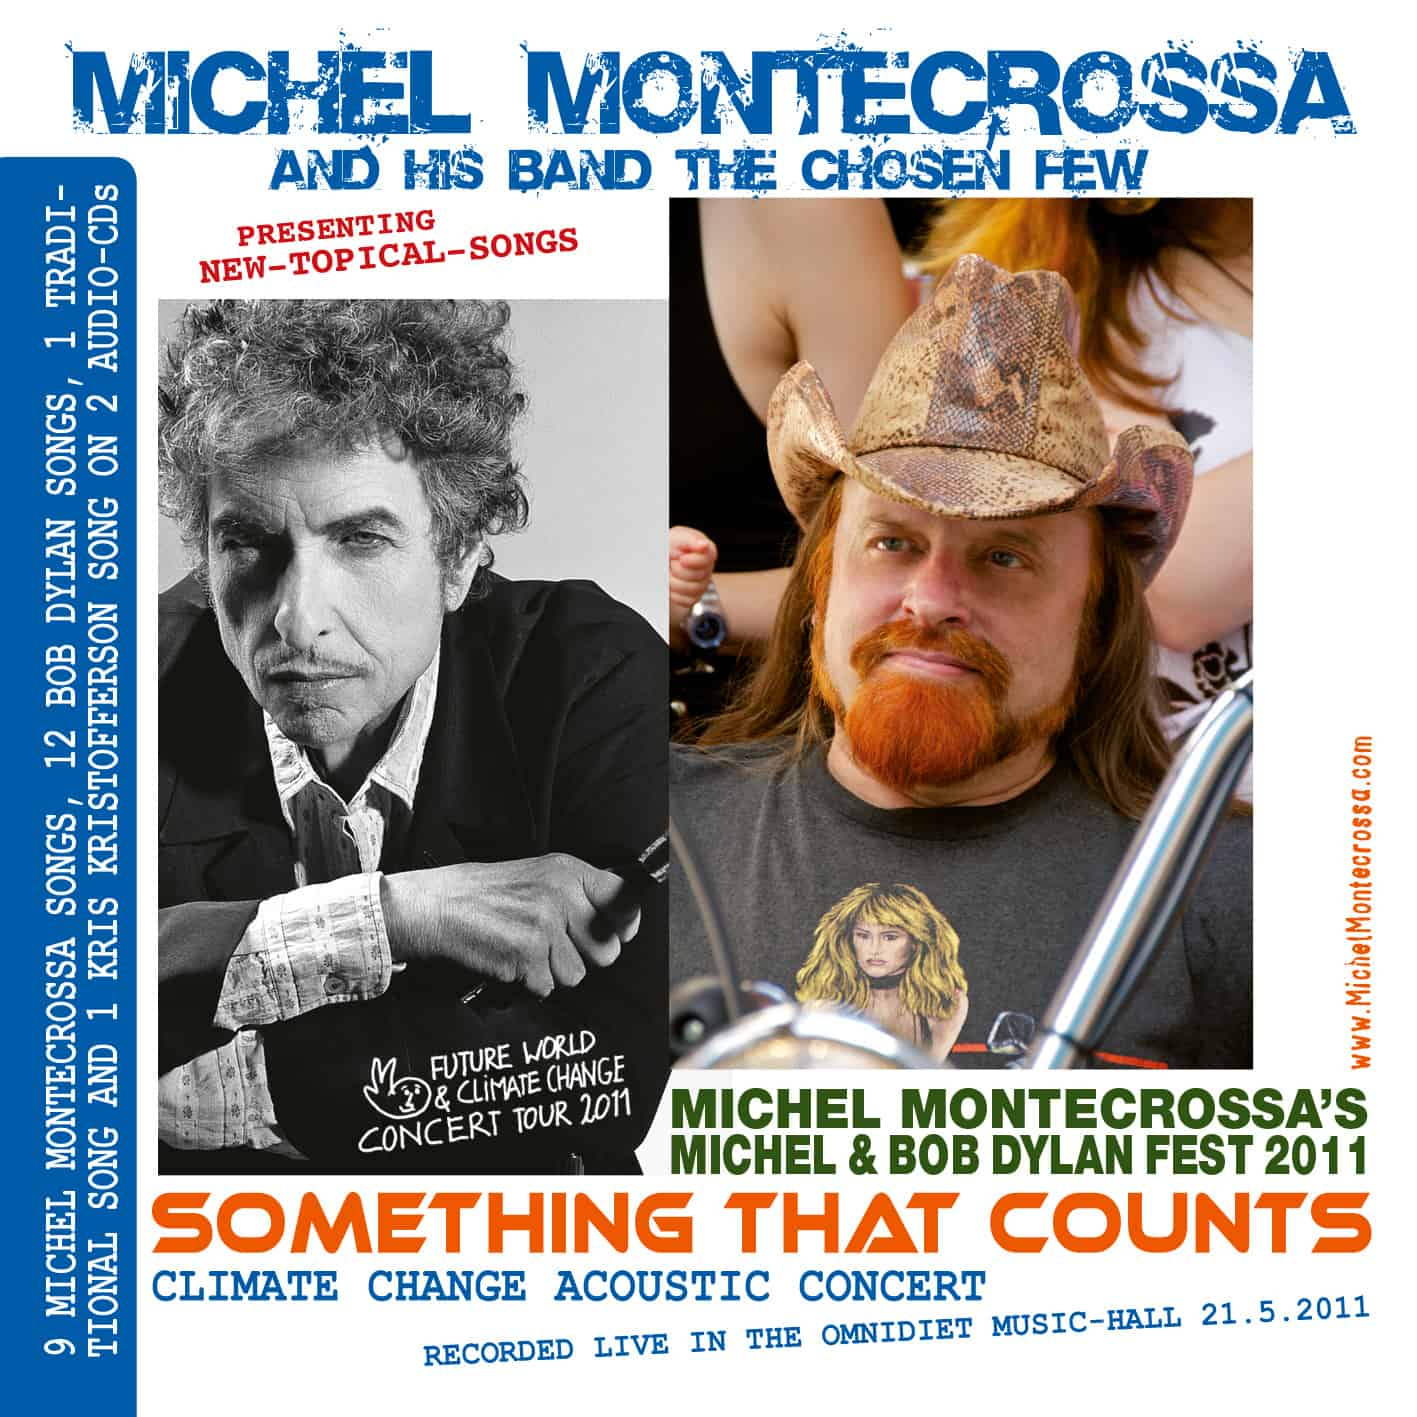 Something That Counts - Michel Montecrossa's Michel & Bob Dylan Fest 2011